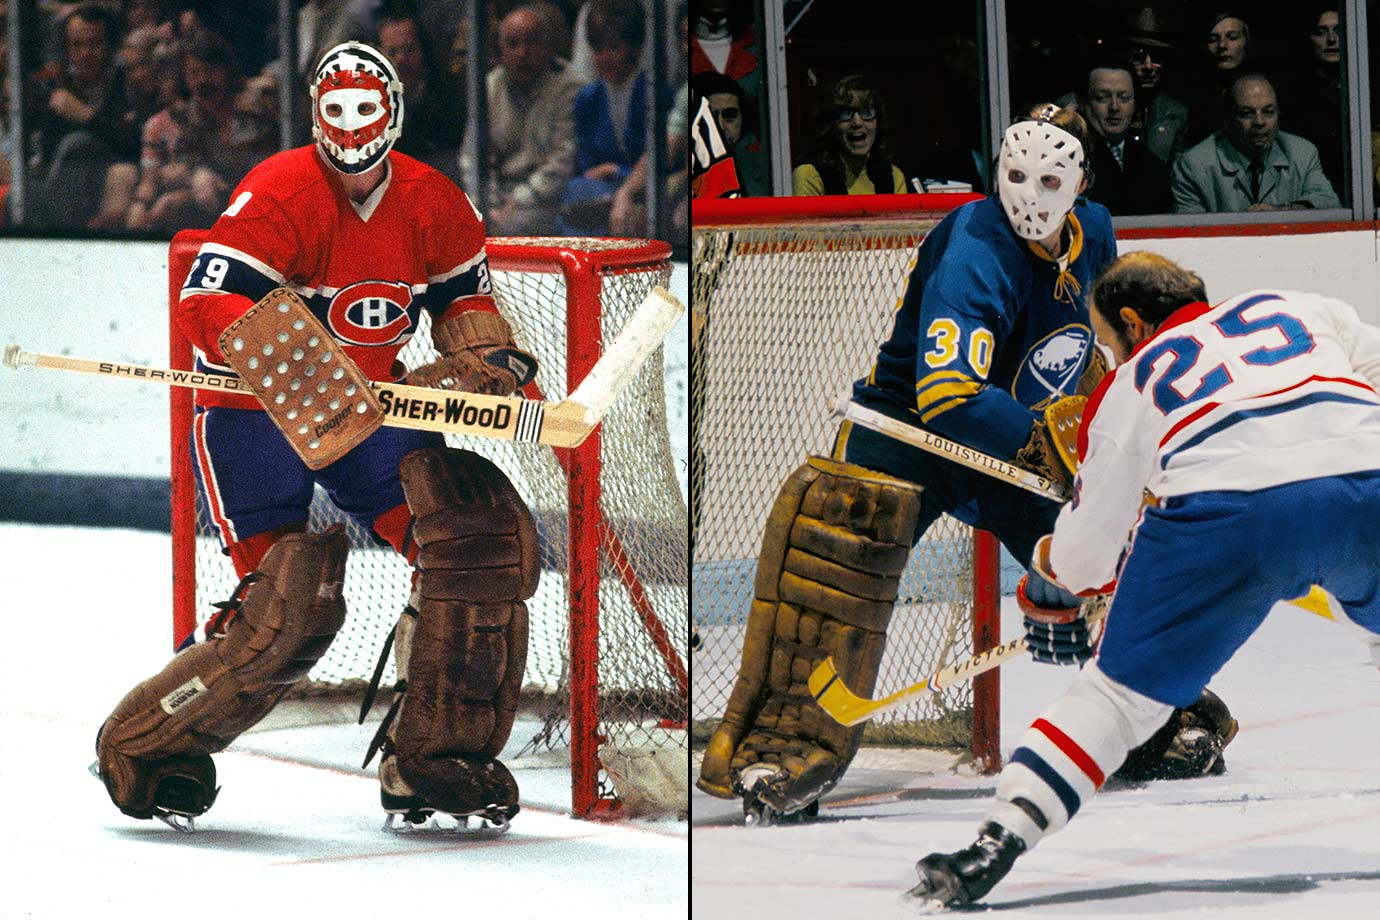 Ken's achievements—five Vezinas, a Conn Smythe, the Calder, six Stanley Cups—during an NHL career that lasted only eight years are the stuff of legend and the Hall of Fame. Older brother Dave's pro career began as an emergency goalie with the Rangers in 1962. He later became Hall of Famer Glenn Hall's backup with Chicago. As a Sabre, he faced Ken in a 1971 game (Montreal won, 5-2) and later played in the 1974 NHL All-Star Game before jumping to Edmonton of the WHA.